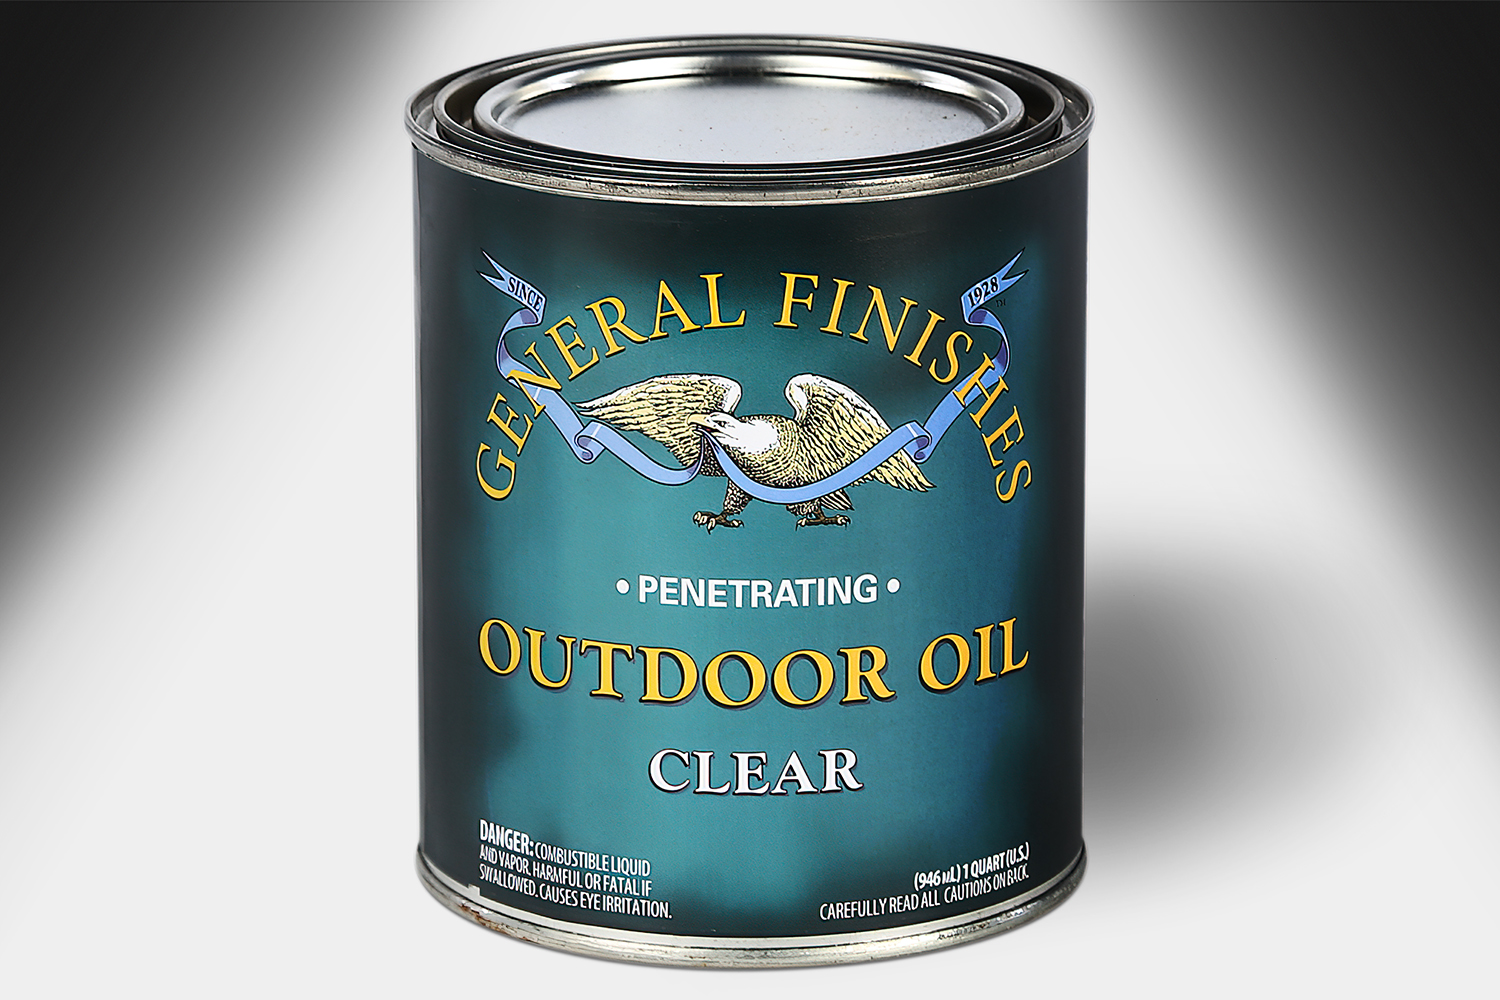 General Finishes Outdoor Oil Quart